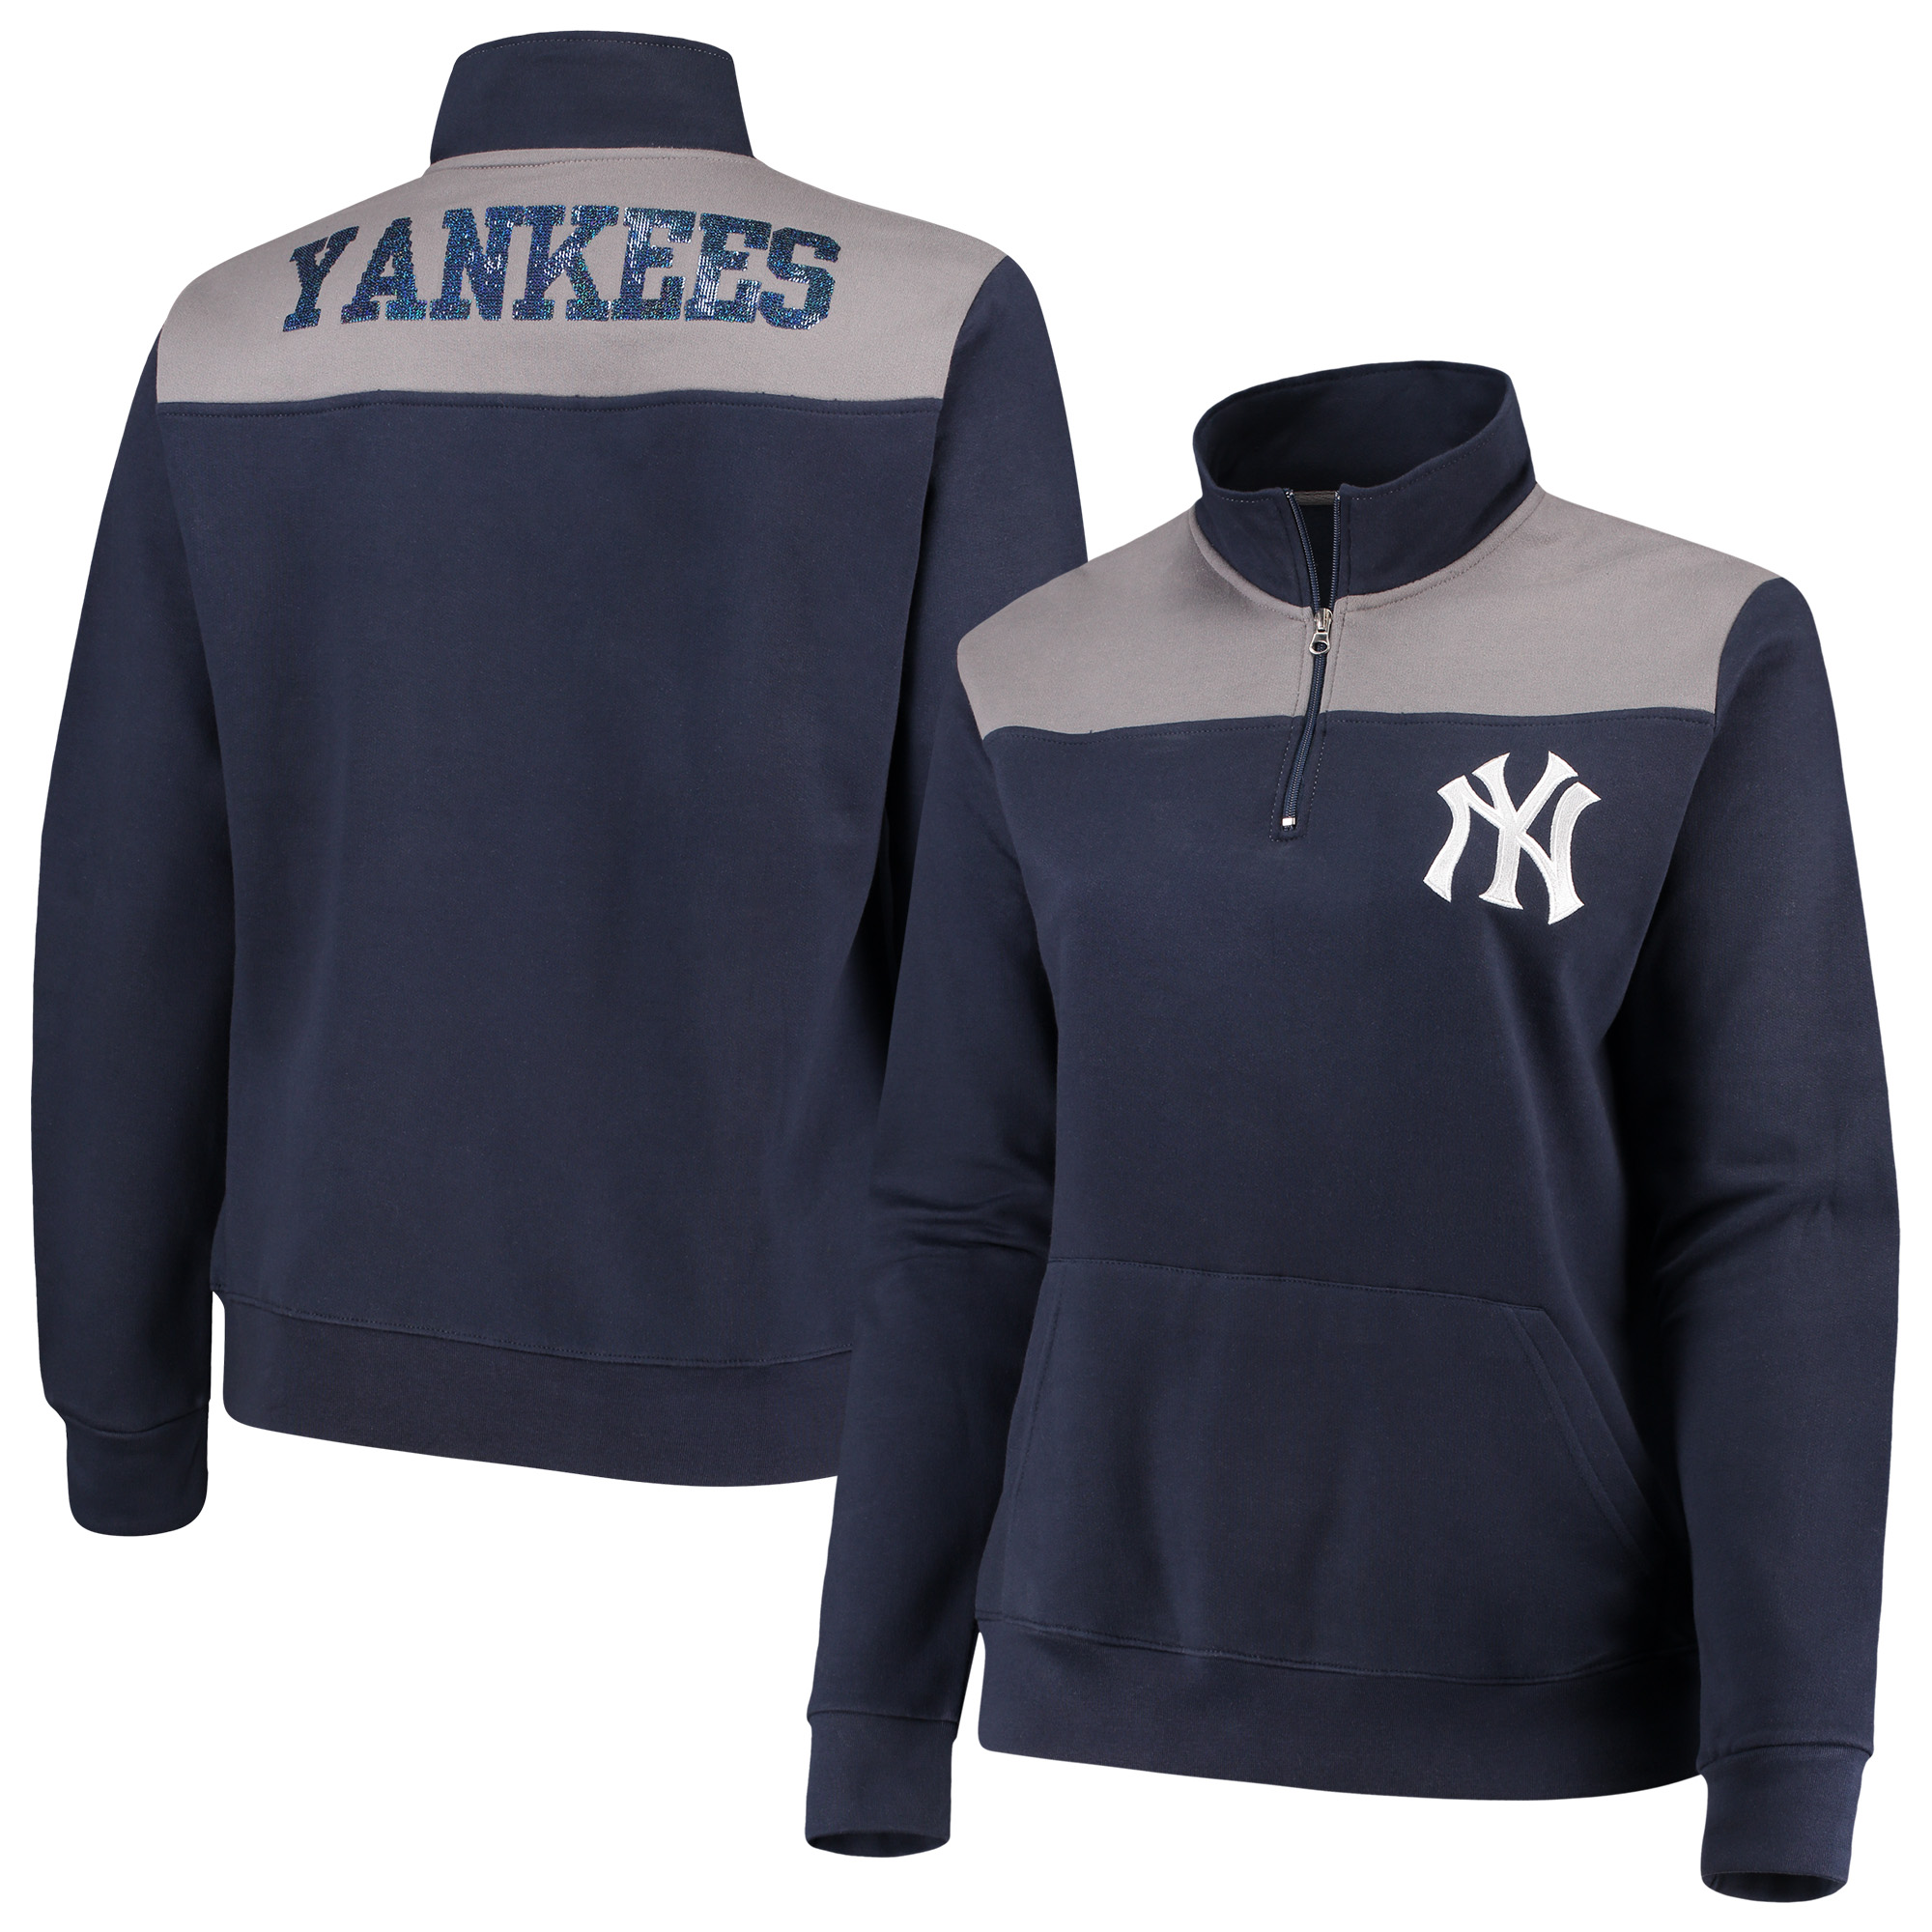 San Diego Padres Women's Zip Up Jacket Sequin Blue White Size Small